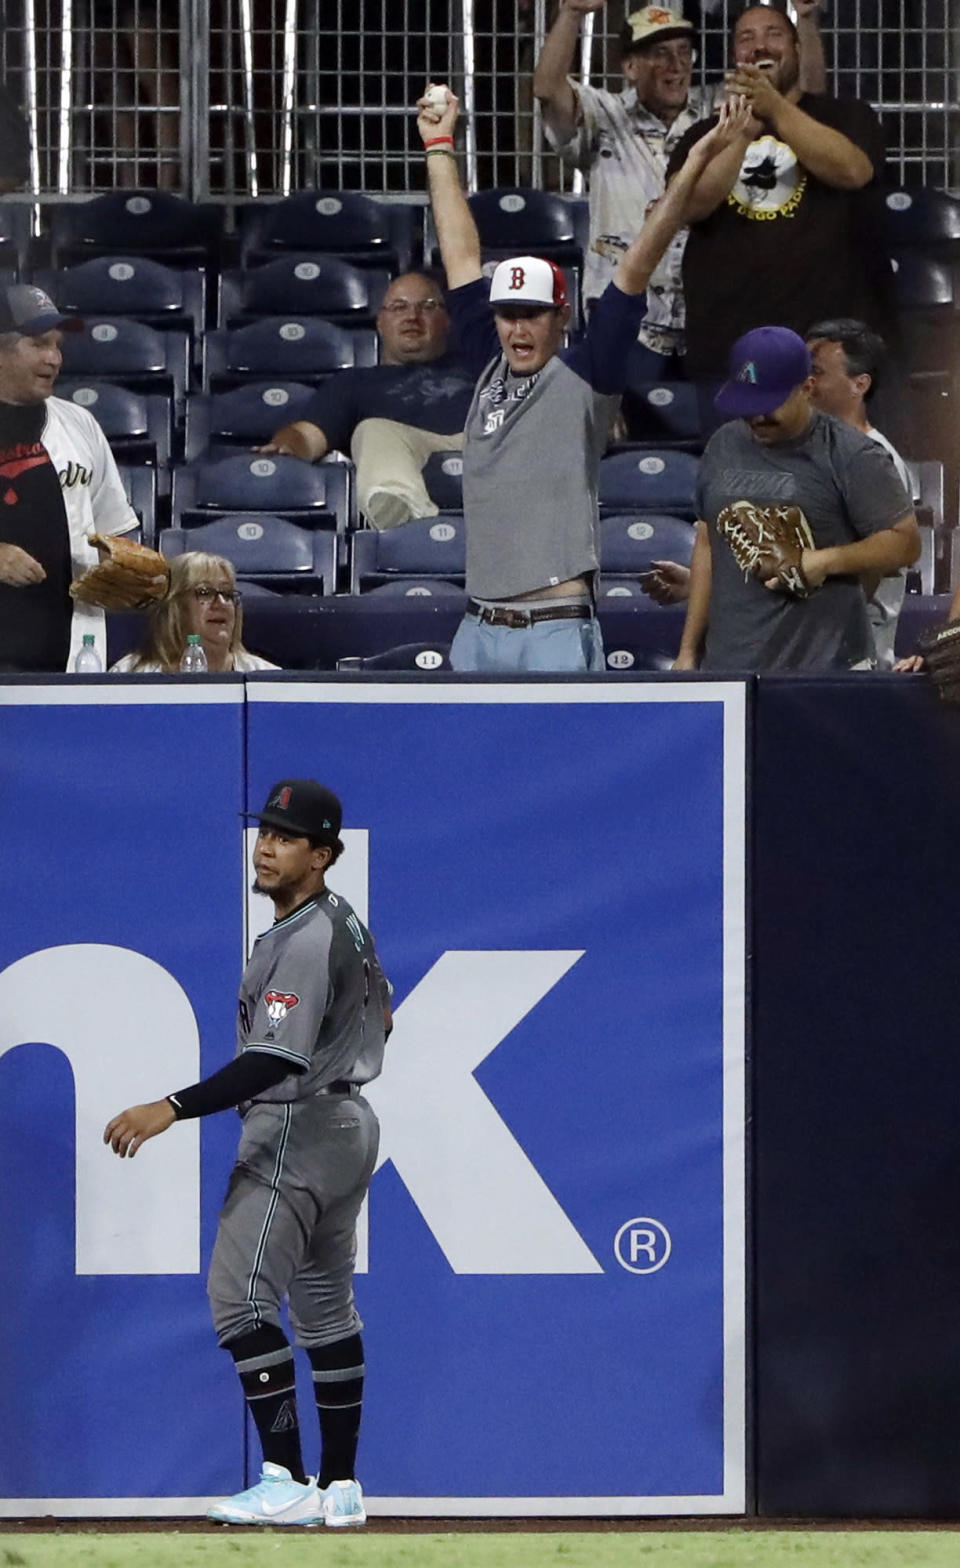 A fan reacts after catching a home run ball hit by the San Diego Padres' Manuel Margot as Arizona Diamondbacks center fielder Jon Jay, below, looks on during the eighth inning of a baseball game Friday, Aug. 17, 2018, in San Diego. (AP Photo/Gregory Bull)